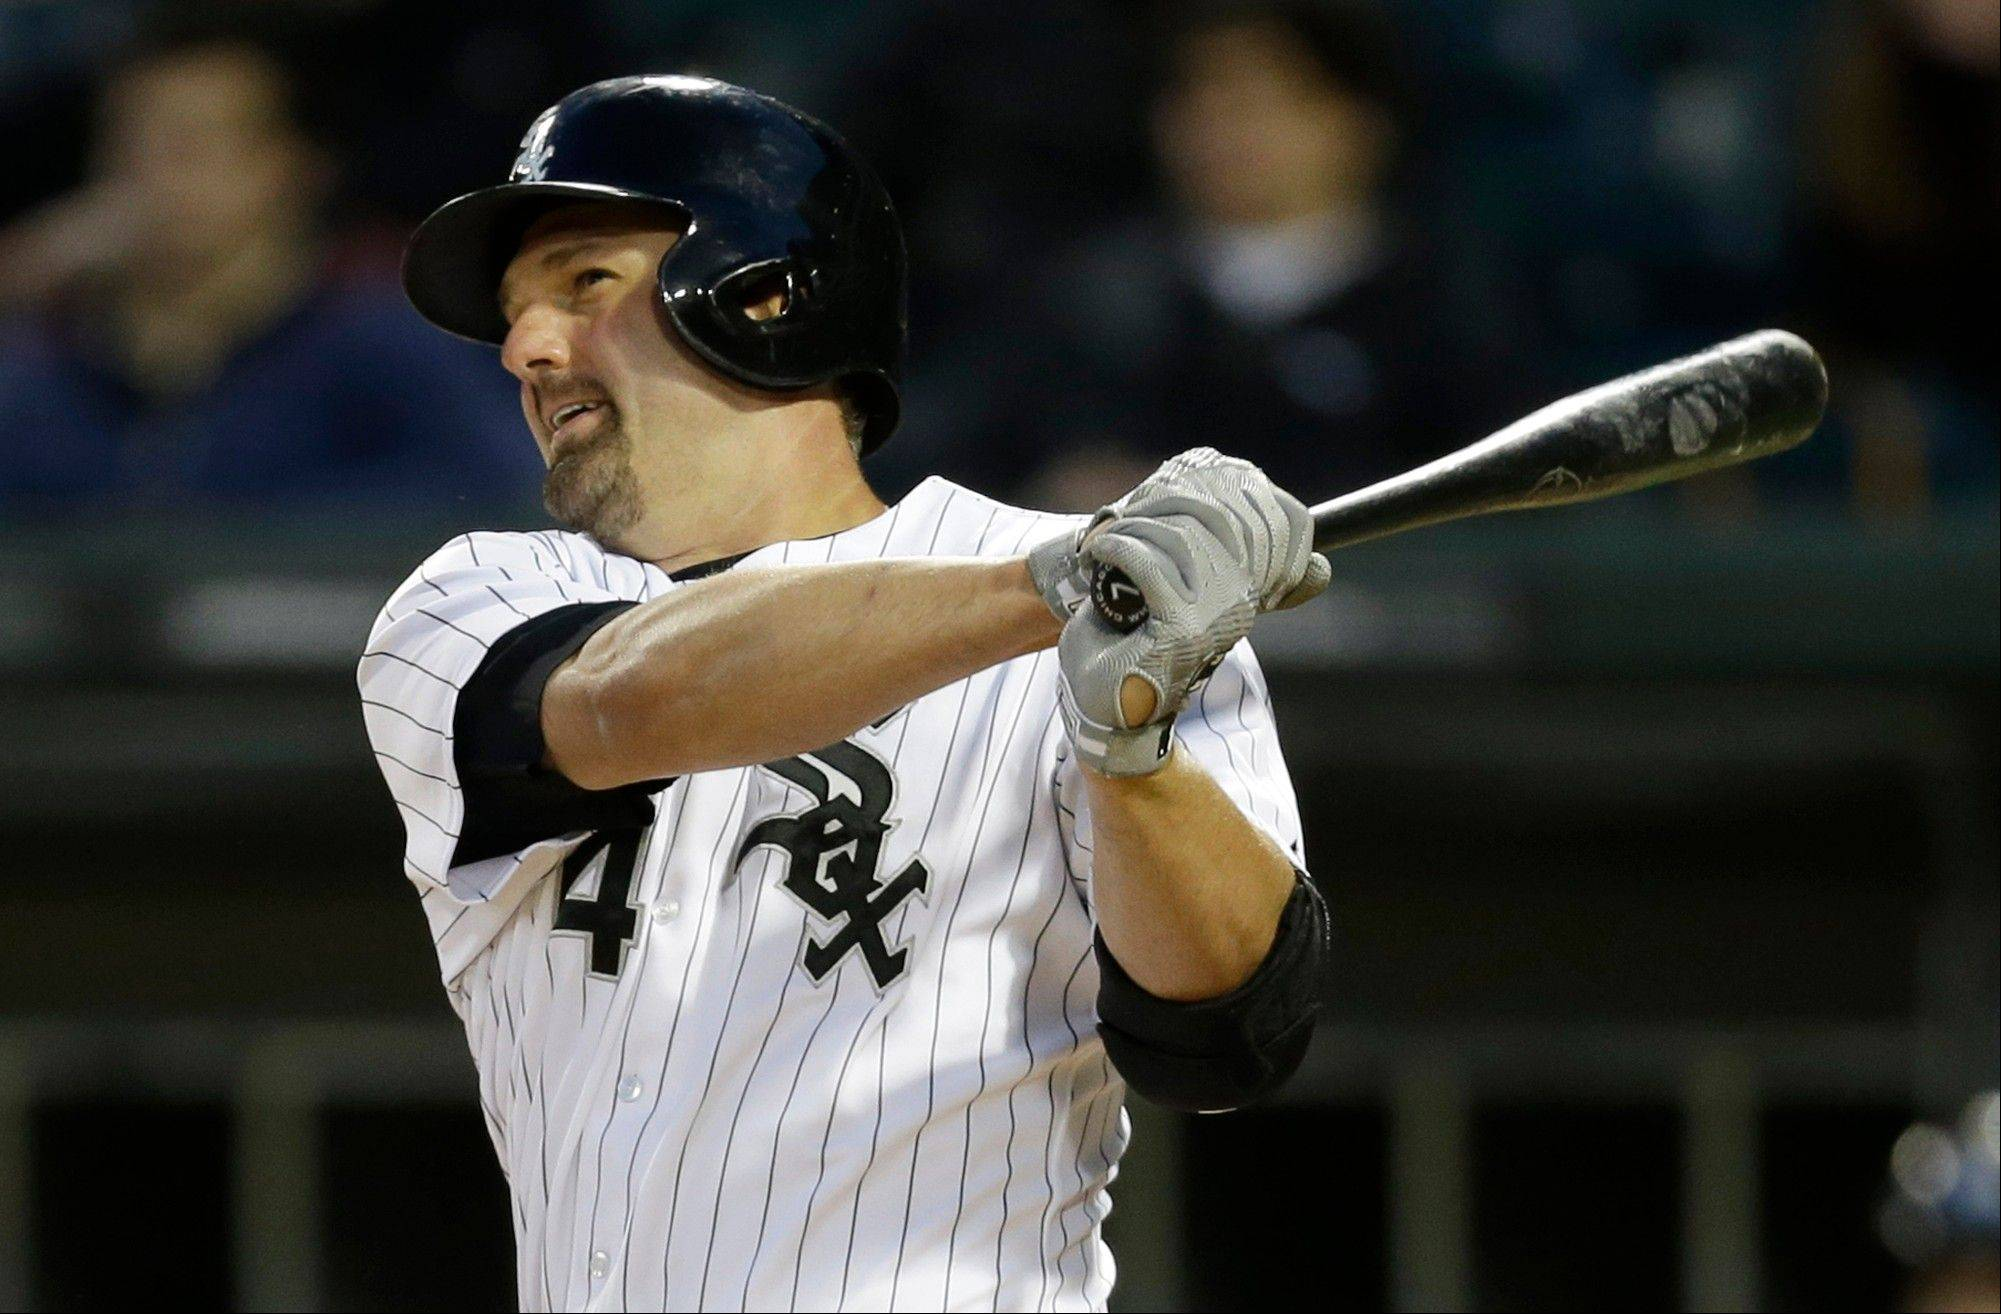 Paul Konerko has been showing signs of coming around at the plate, and the White Sox need that offense from their veteran, says Chris Rongey.